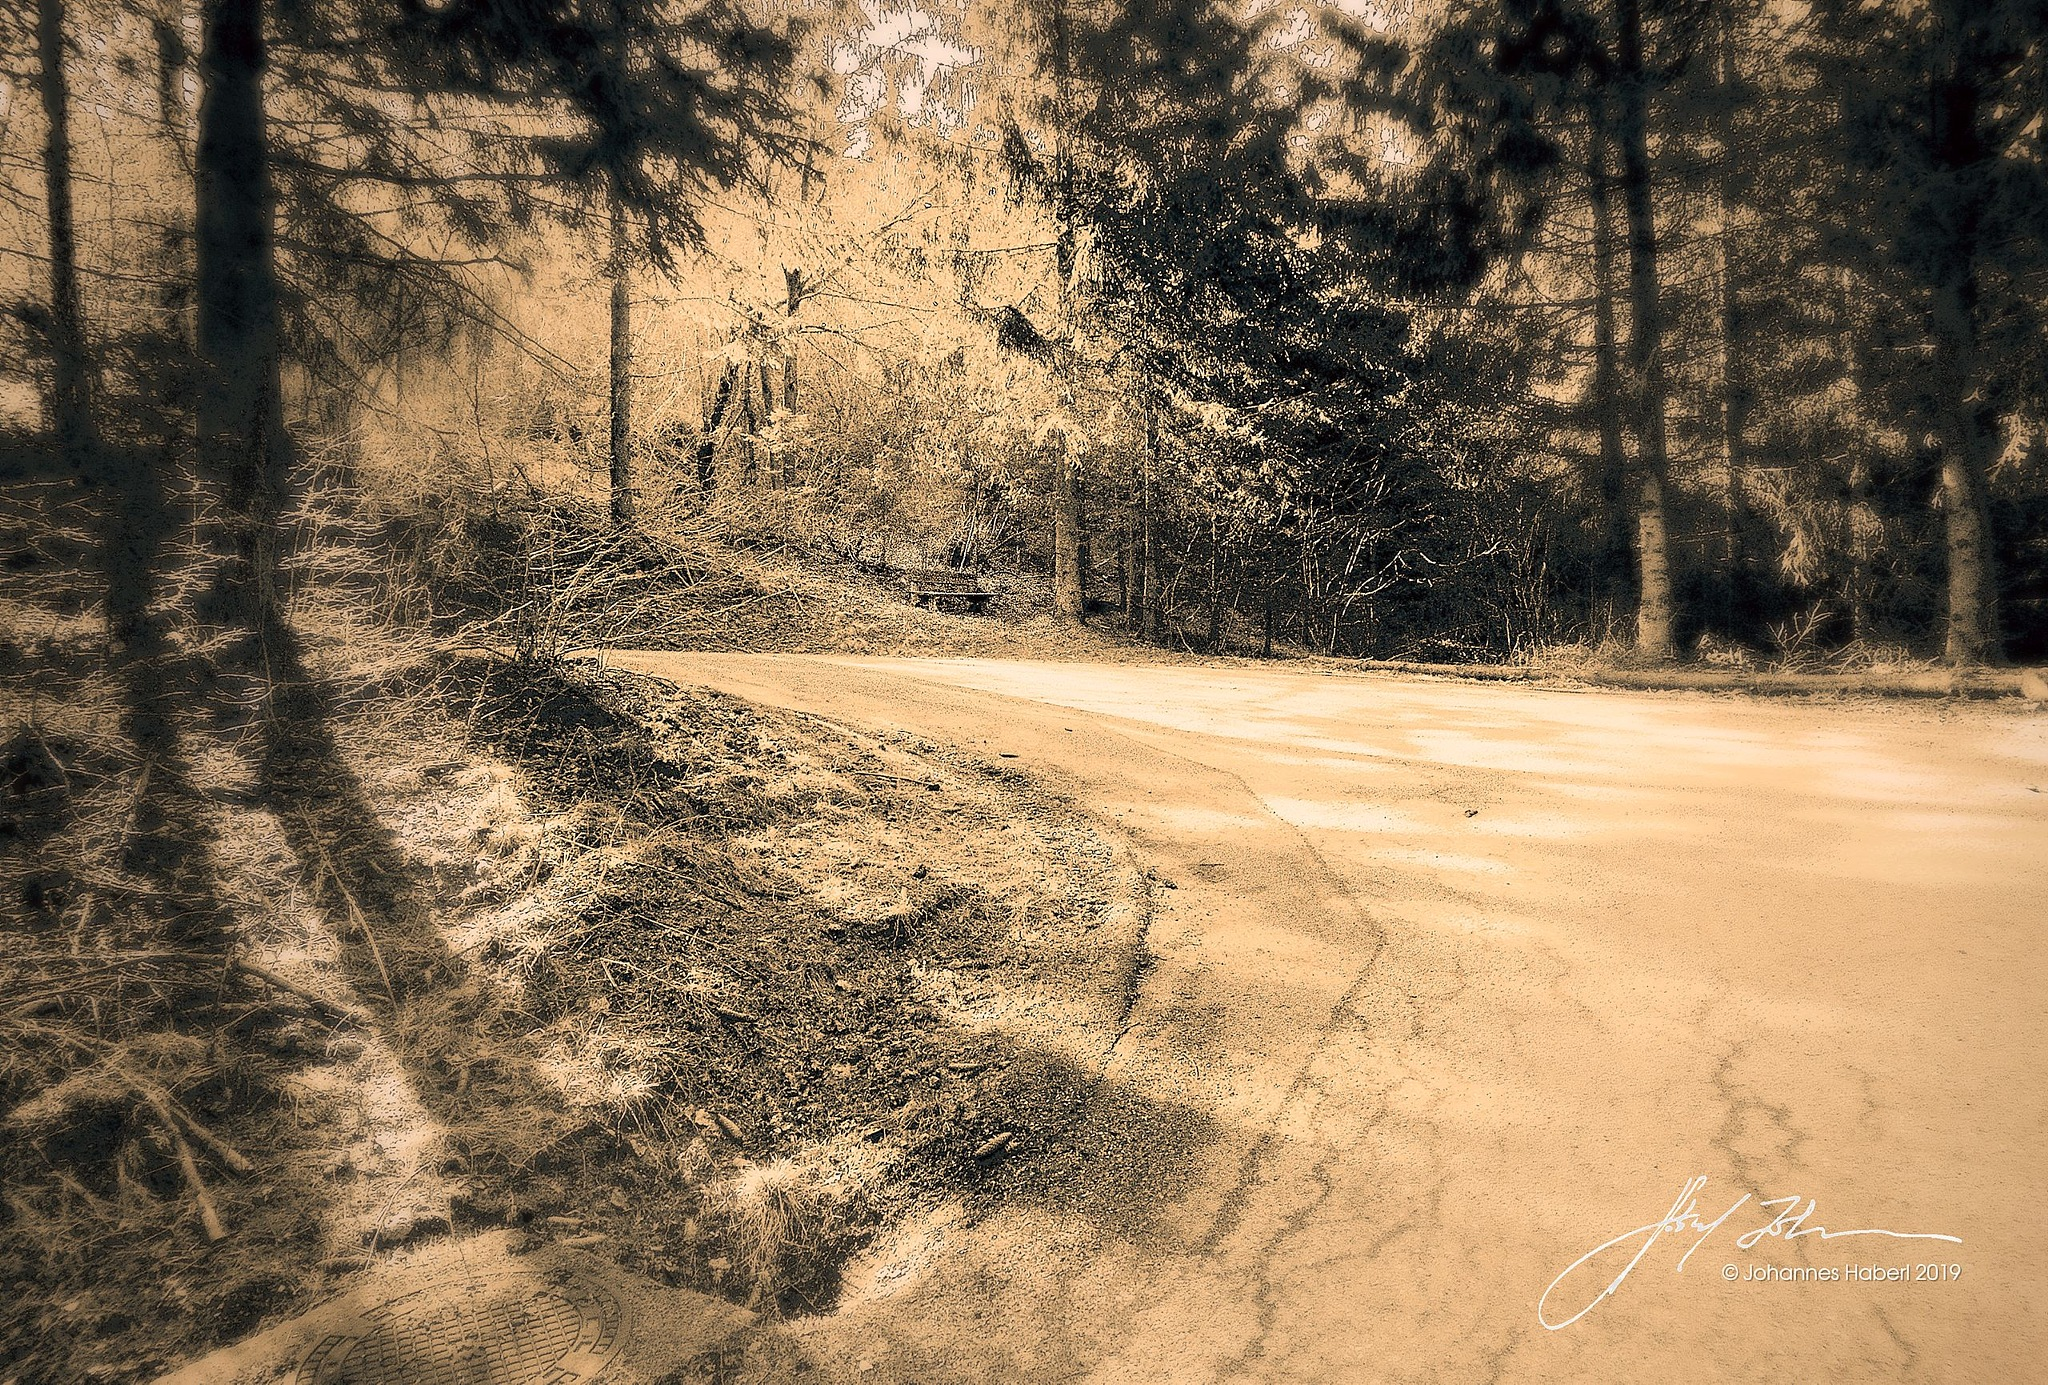 road through the woods / B&W toned by Johannes Haberl